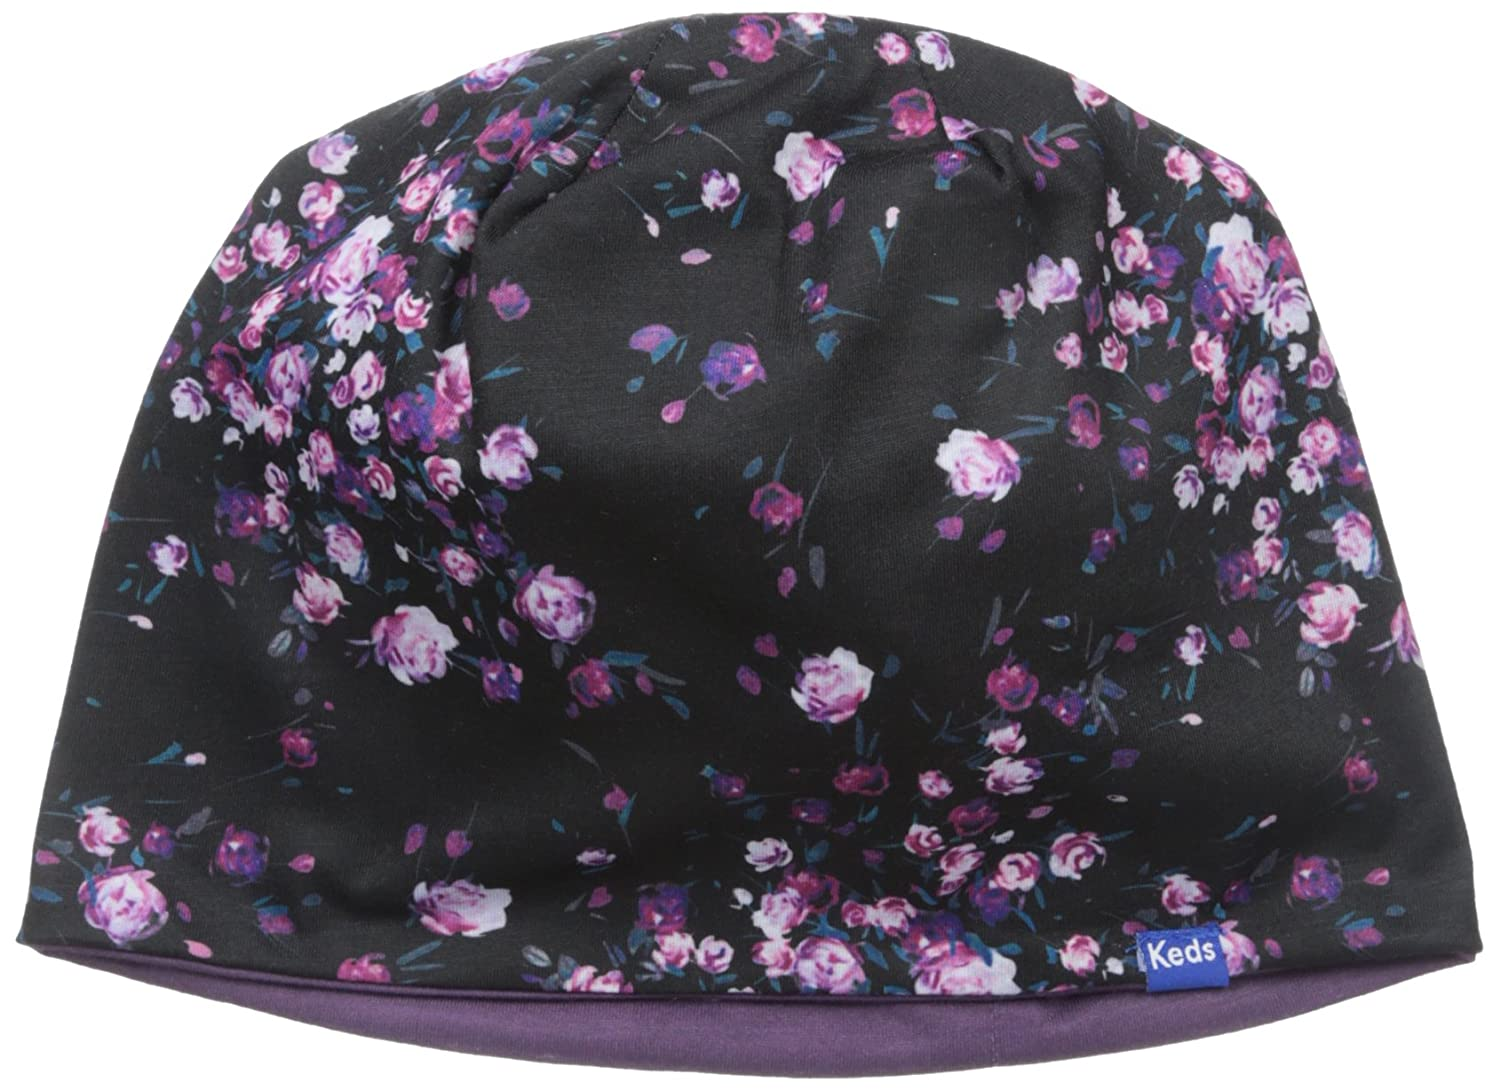 426f474799d Keds Women s Sublimated Beanie